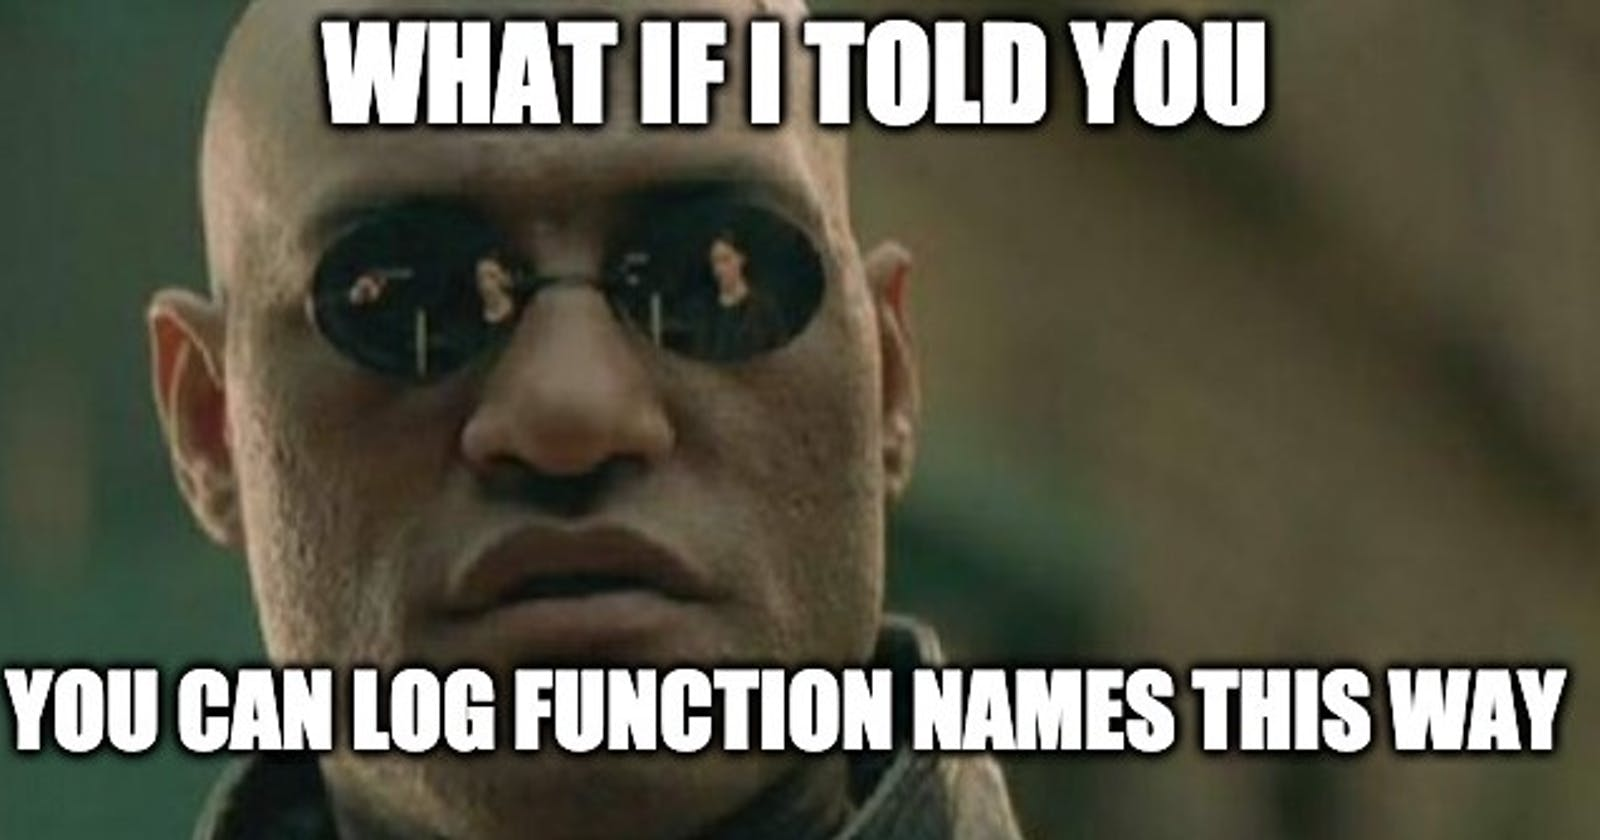 You can log function names this way